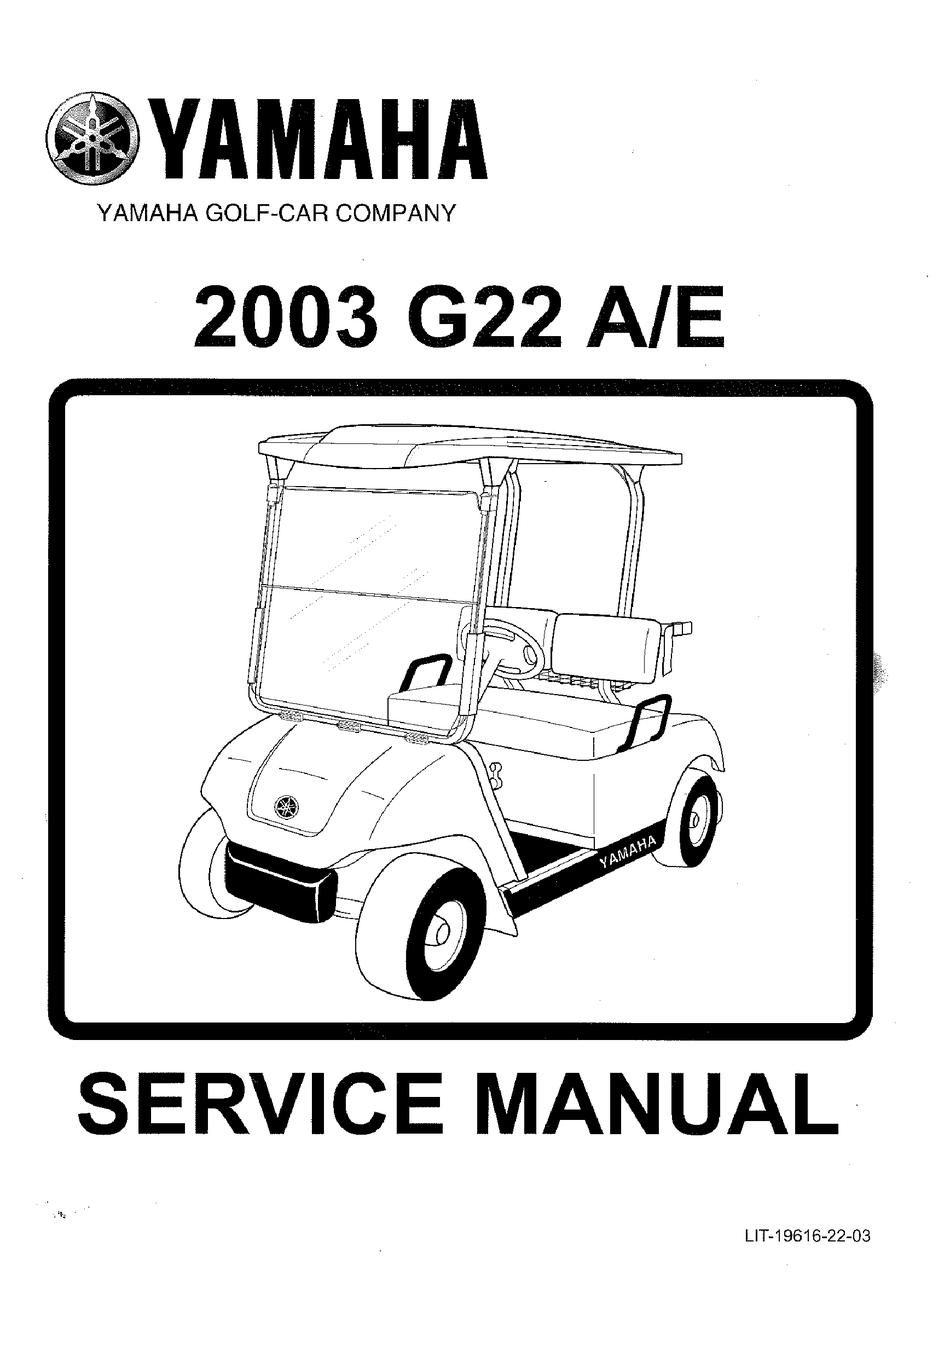 yamaha g22 a/e service manual pdf download | manualslib  manualslib